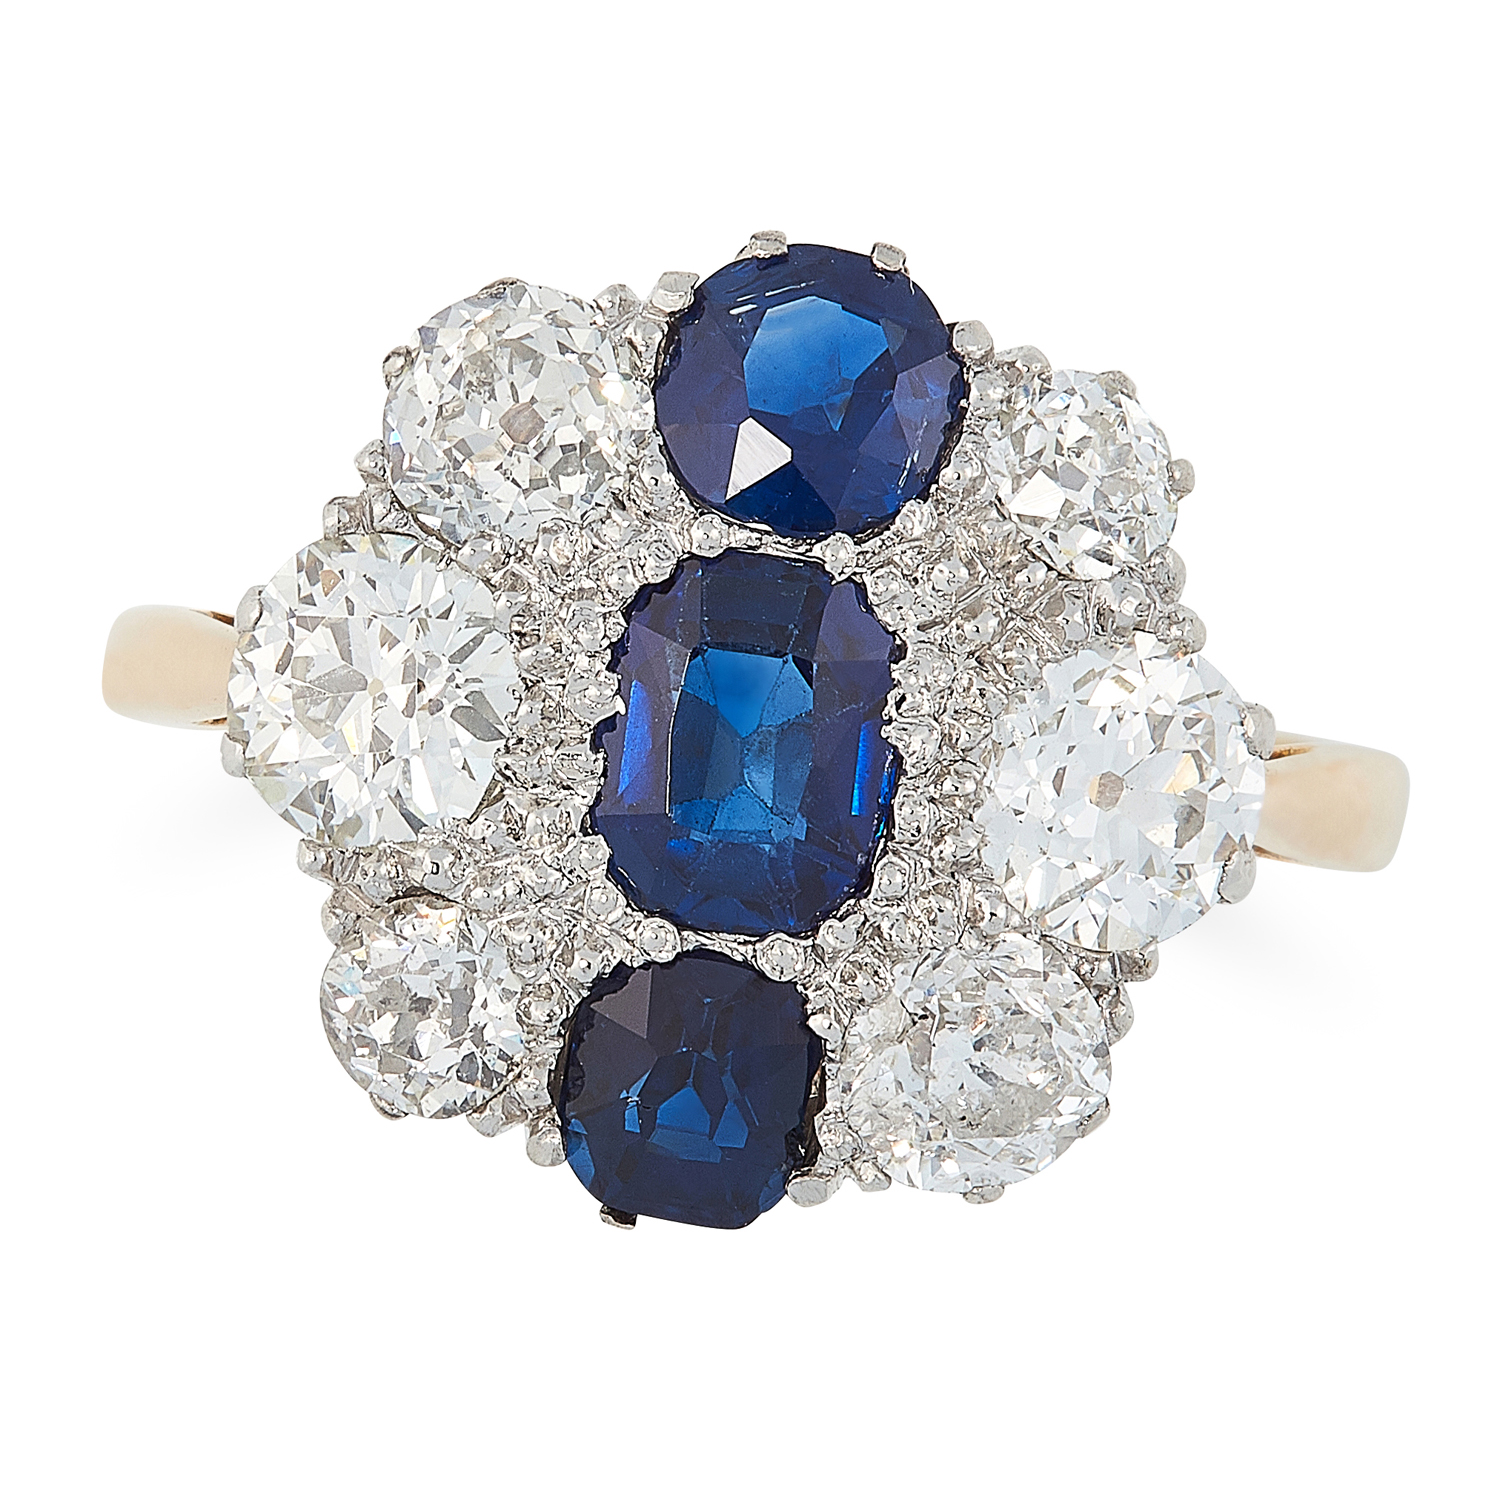 A SAPPHIRE AND DIAMOND DRESS RING, MID 20TH CENTURY in high carat yellow gold, set with a trio of